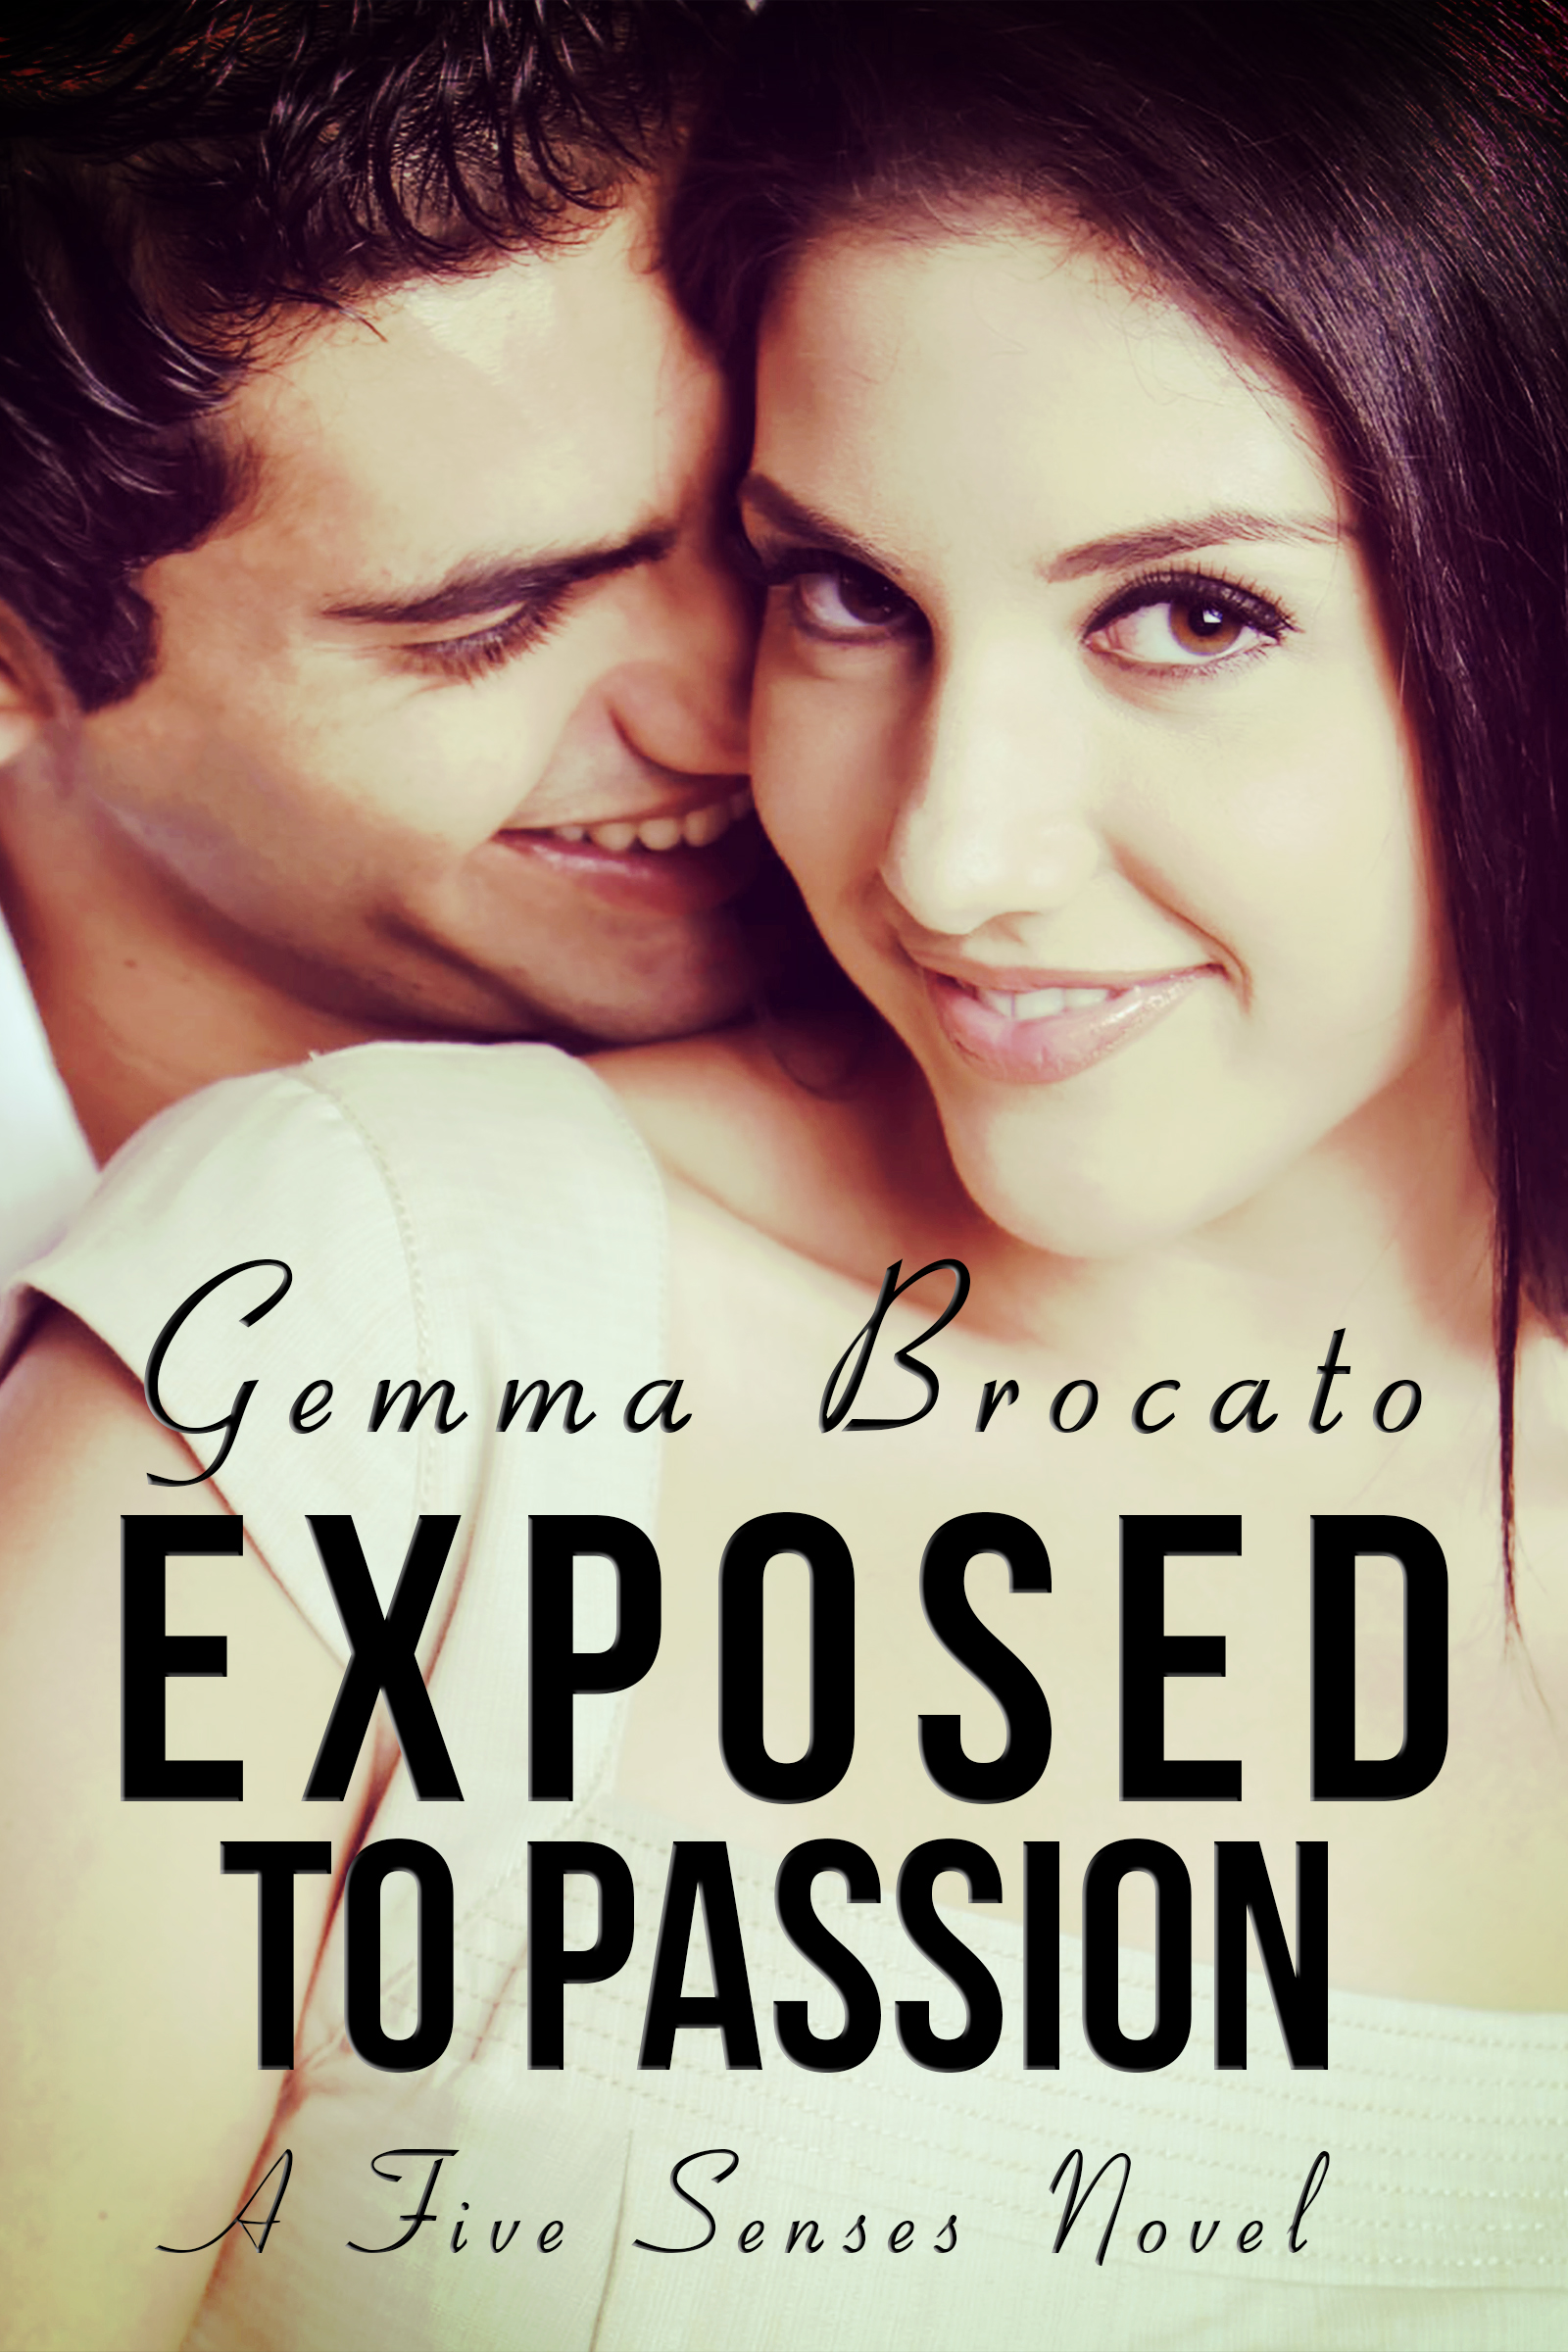 Gemma Brocato's Hot New Book and a hot prized package